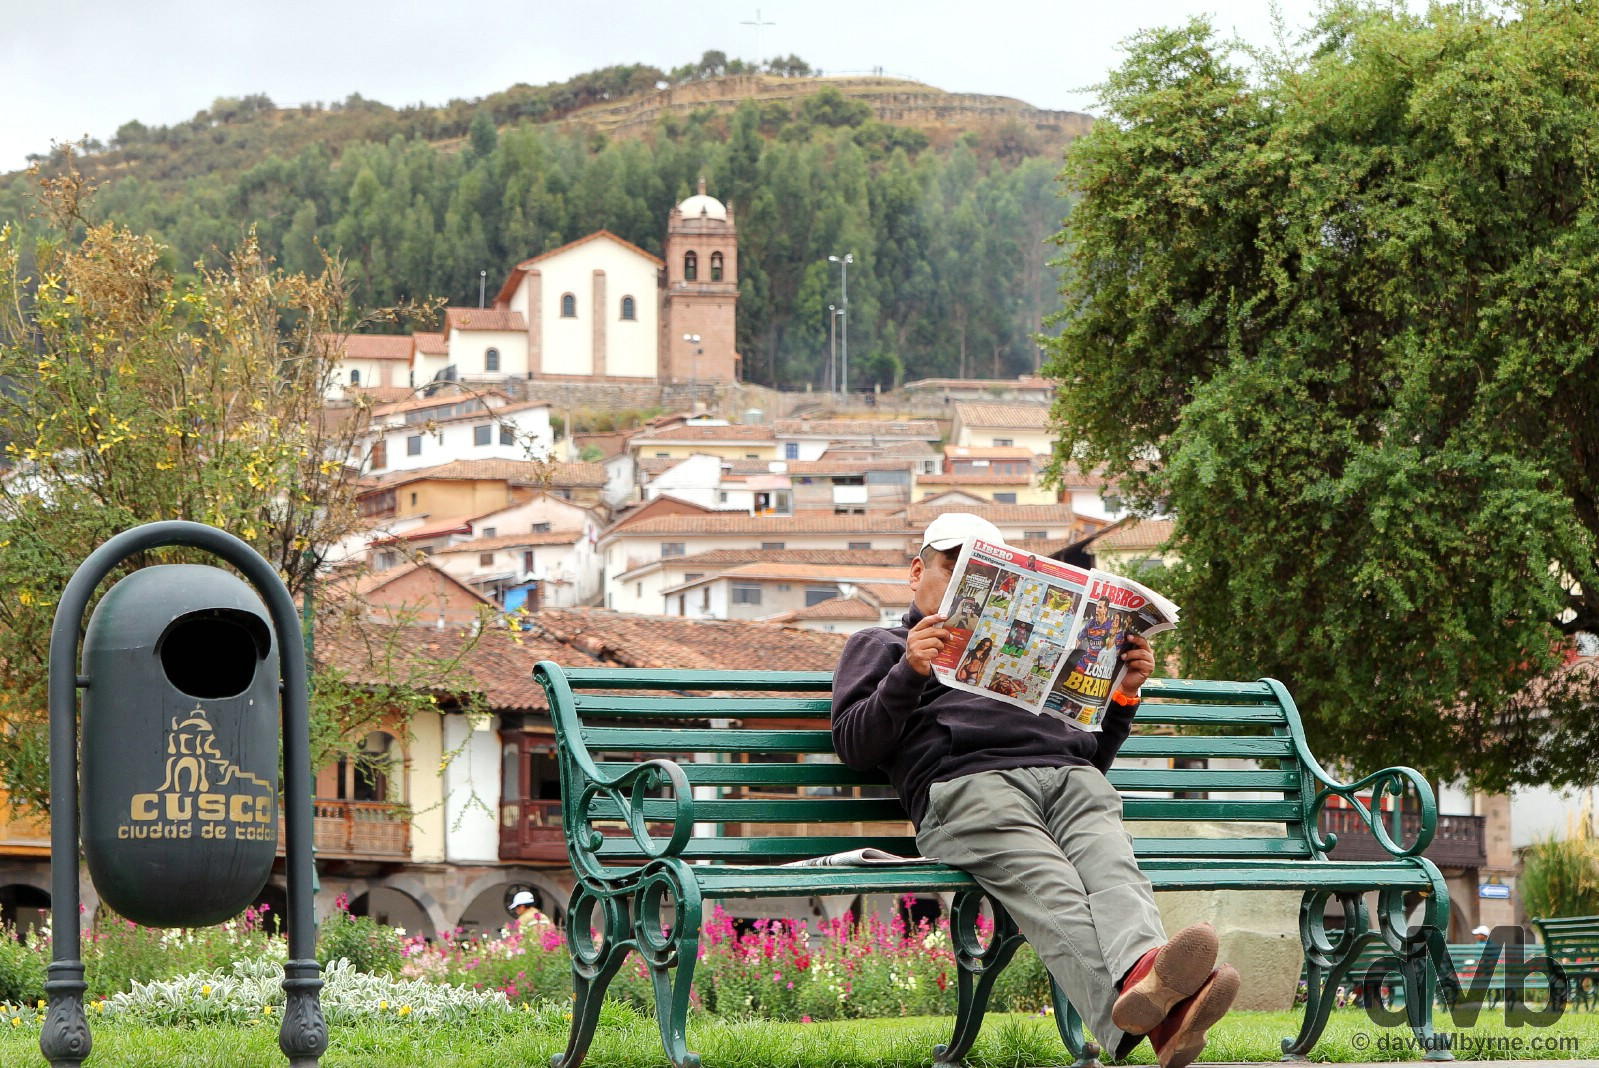 Plaza de Armas, Cusco, Peru. August 13, 2015.